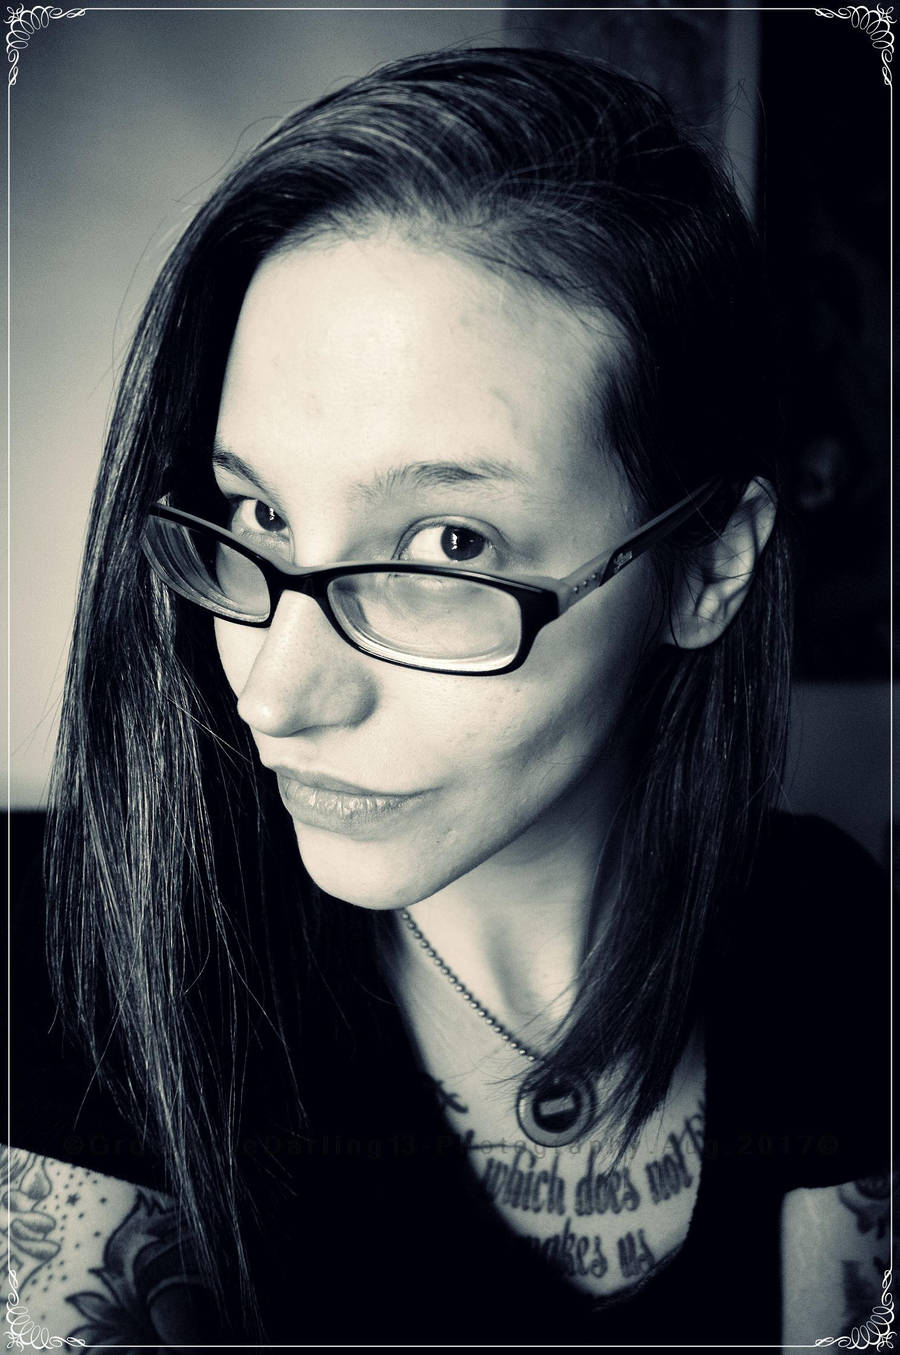 GrotesqueDarling13's Profile Picture